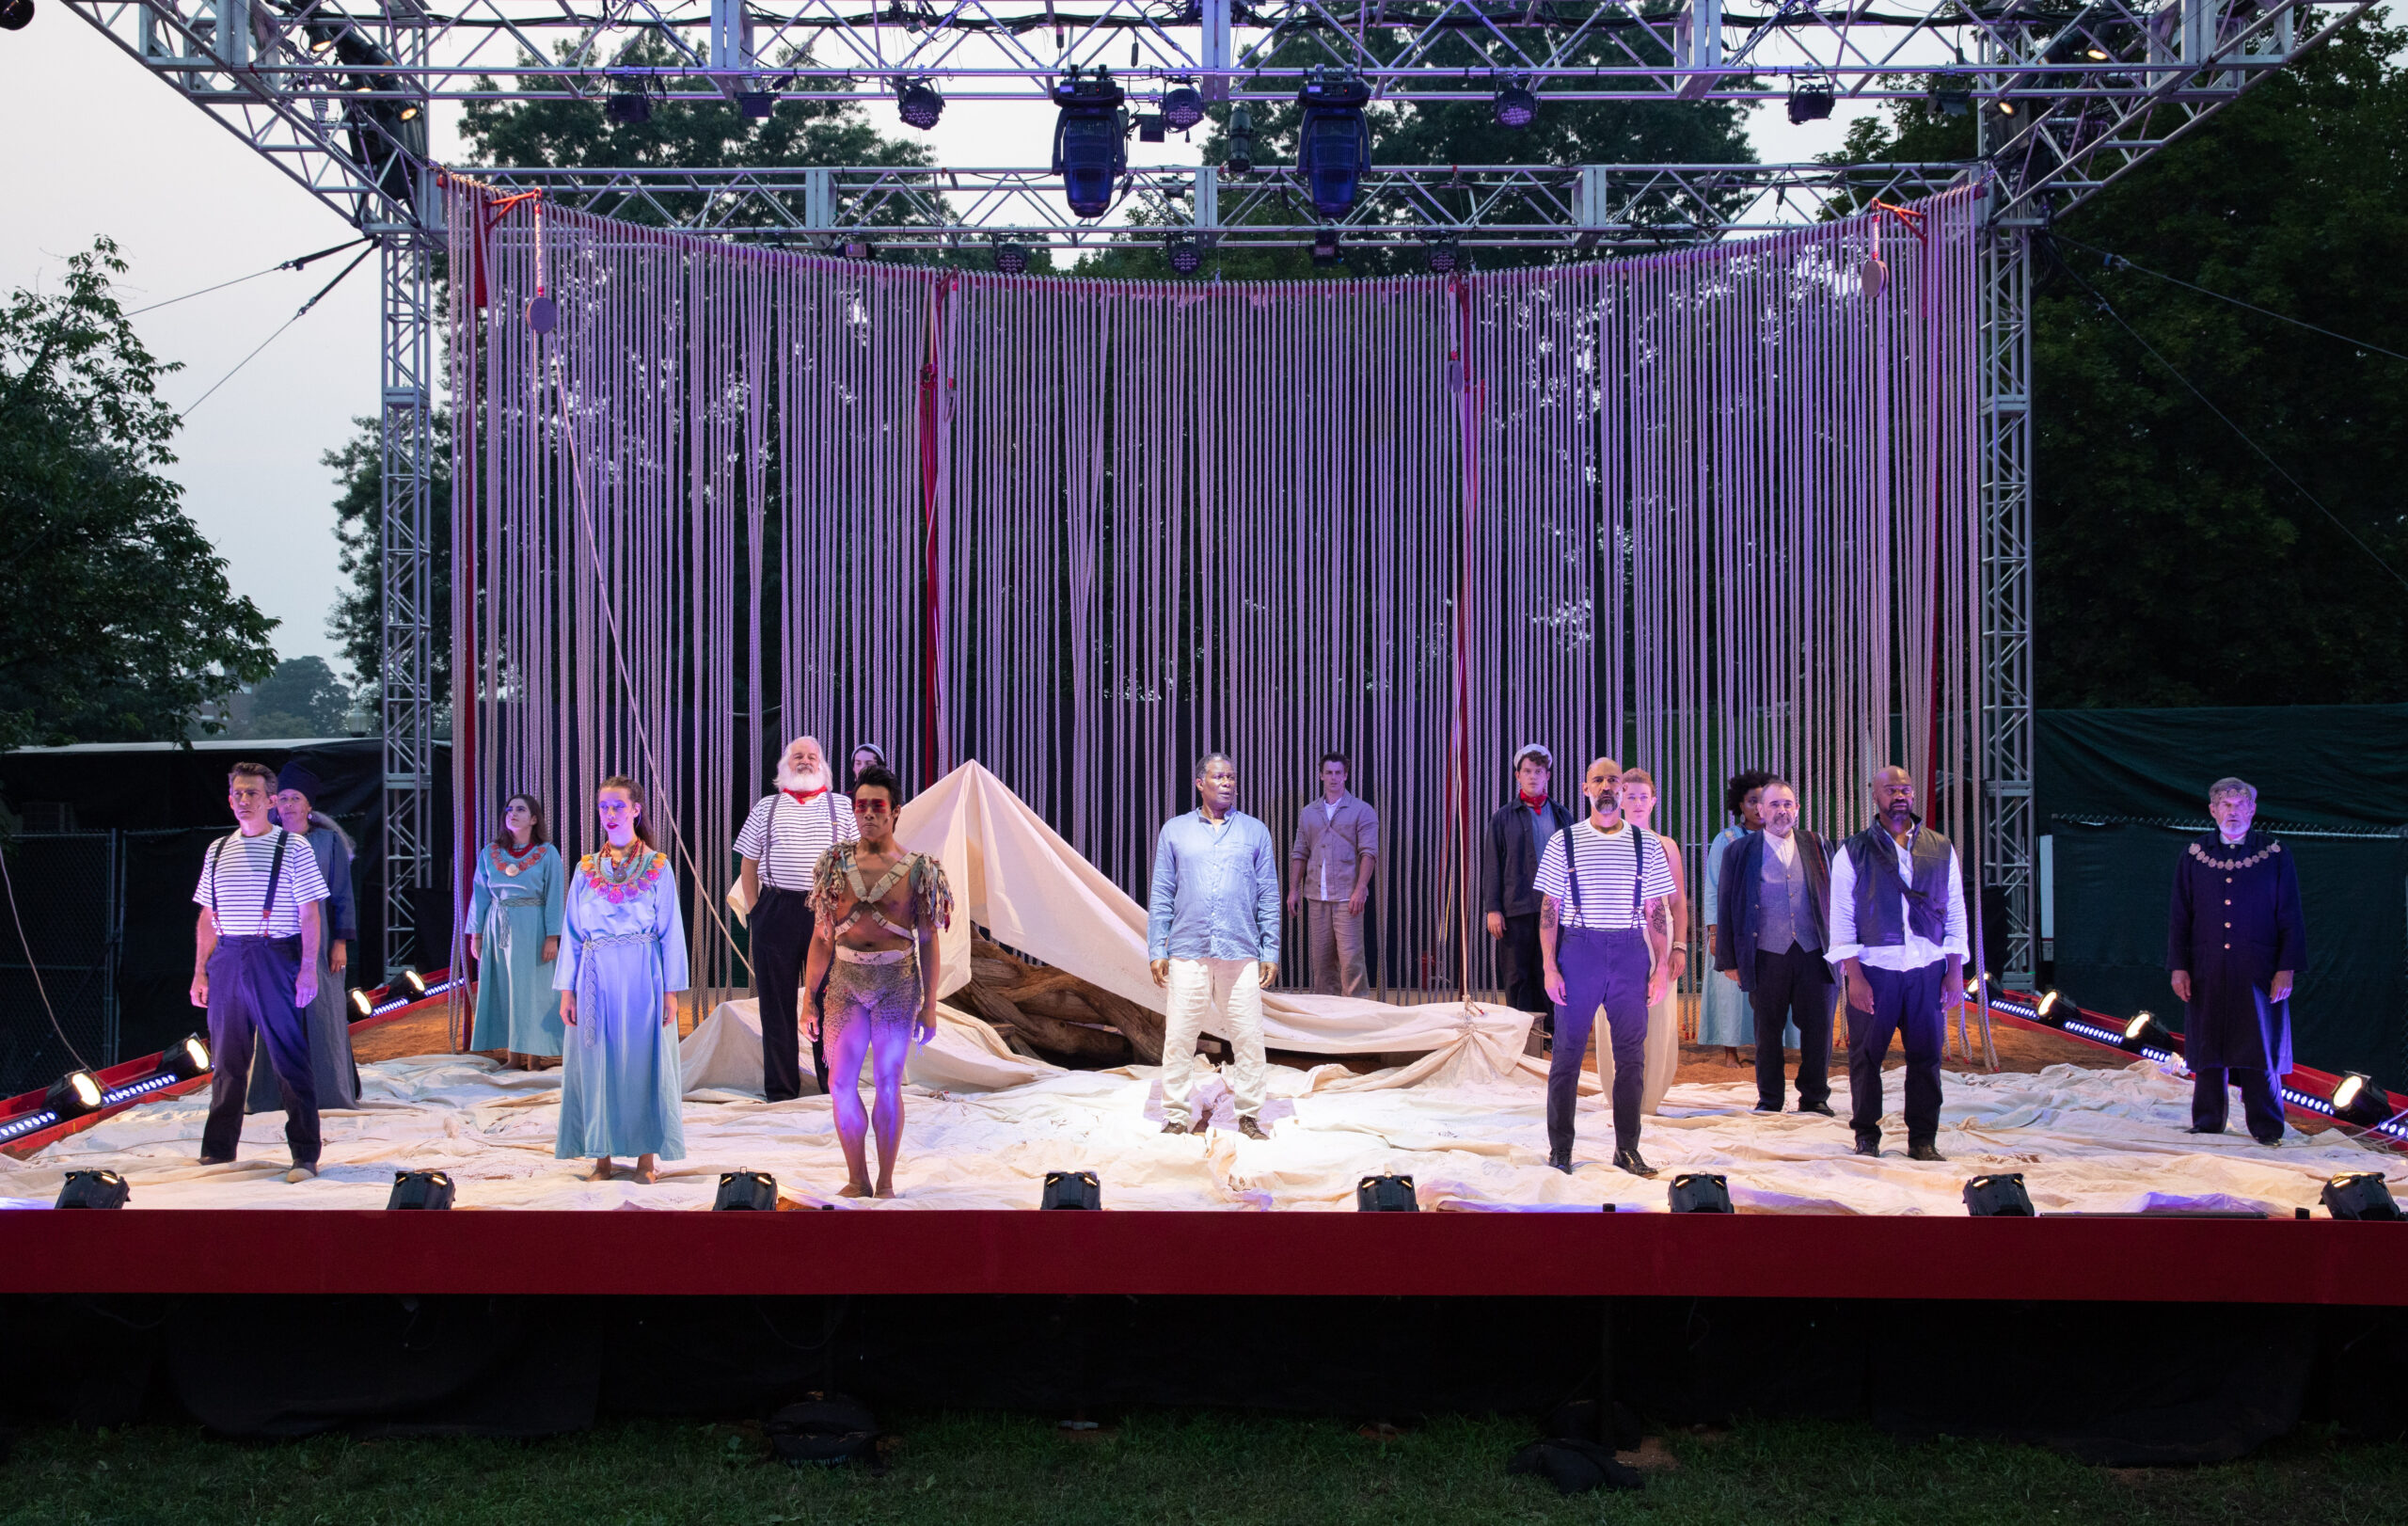 The cast of The Tempest Photo by: Evgenia Eliseeva